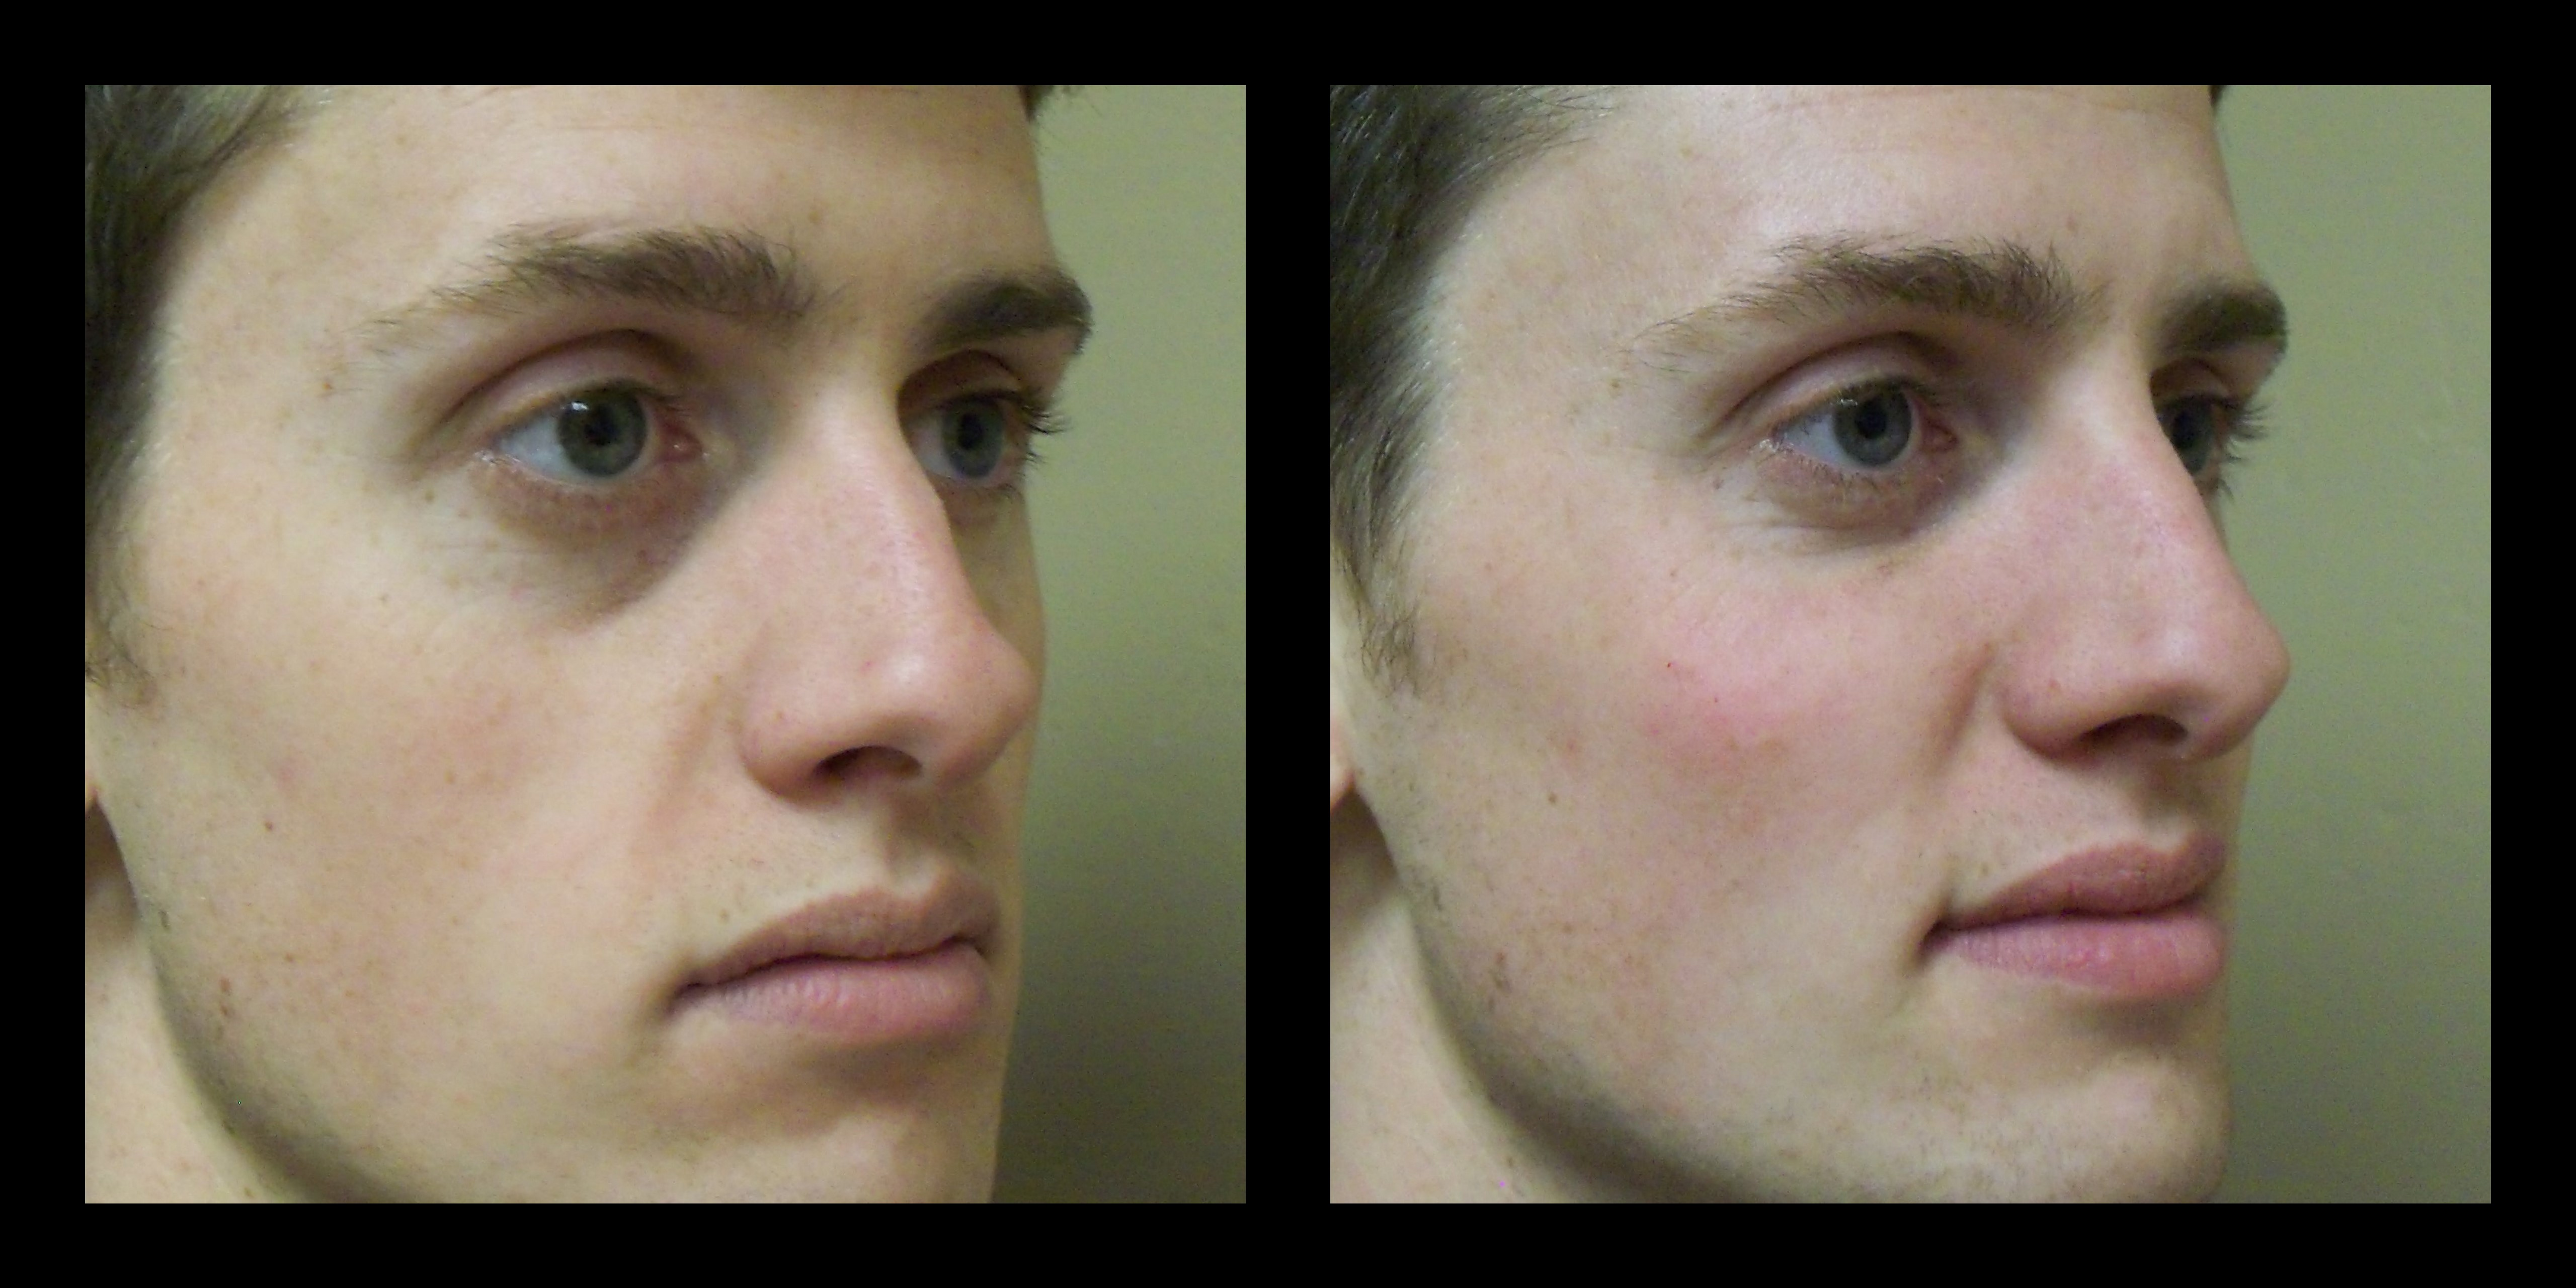 artefill before and after photos, tear trough and nose rhinoplasty